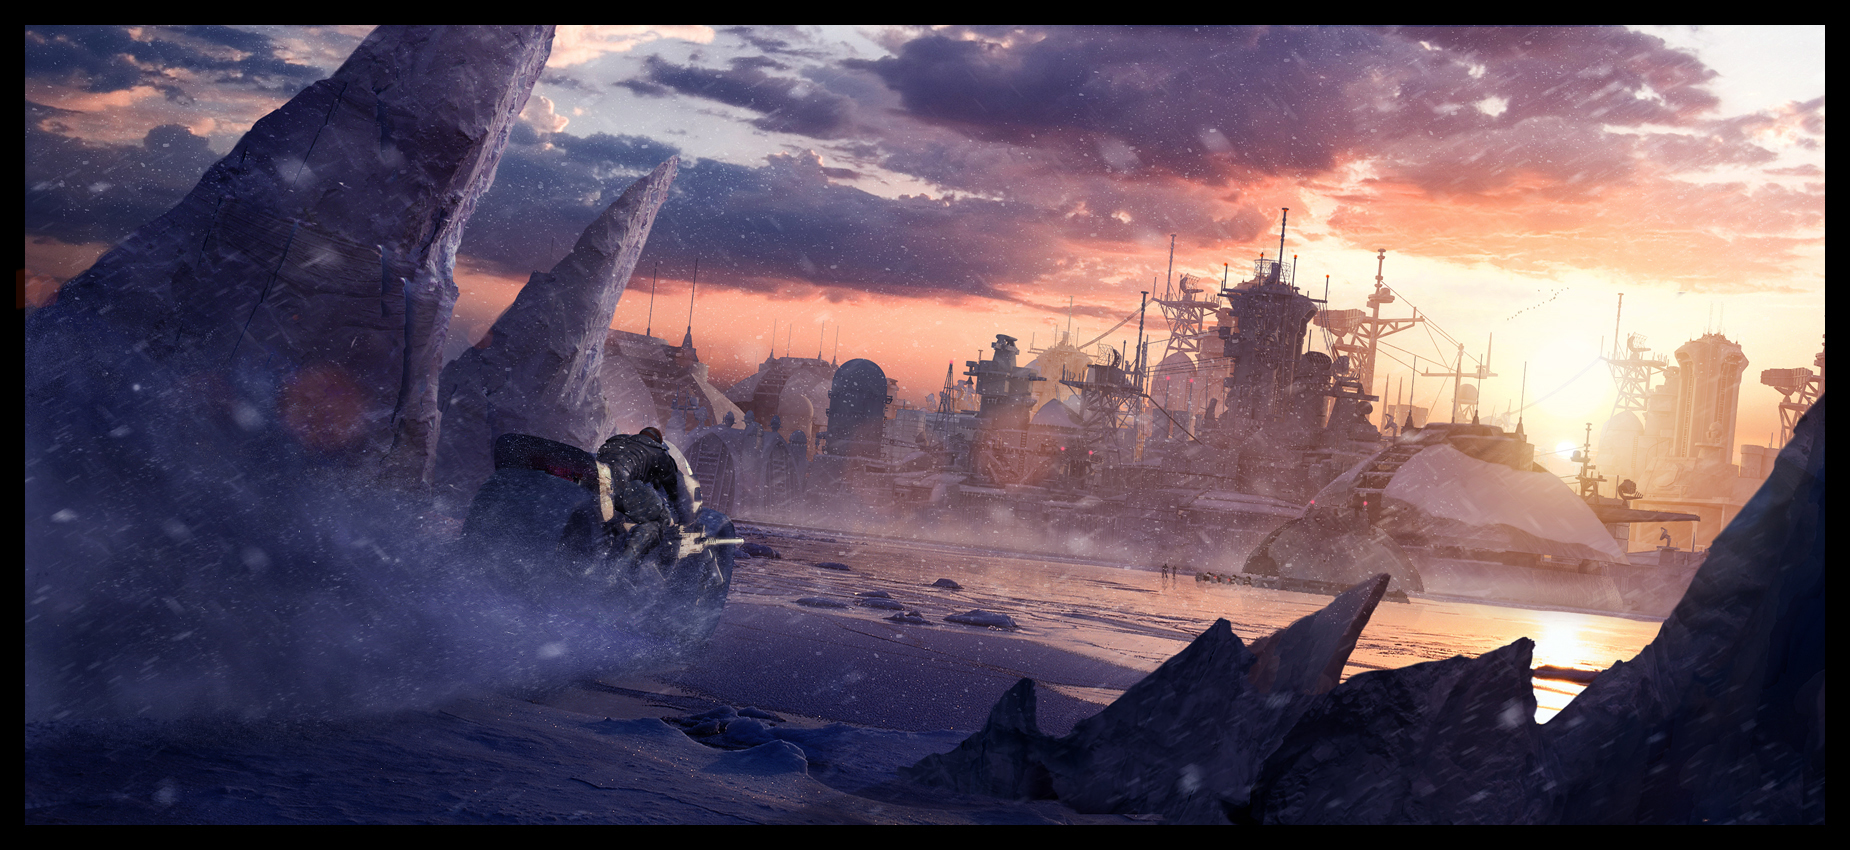 Arctic base by glazyrin HD Wallpaper